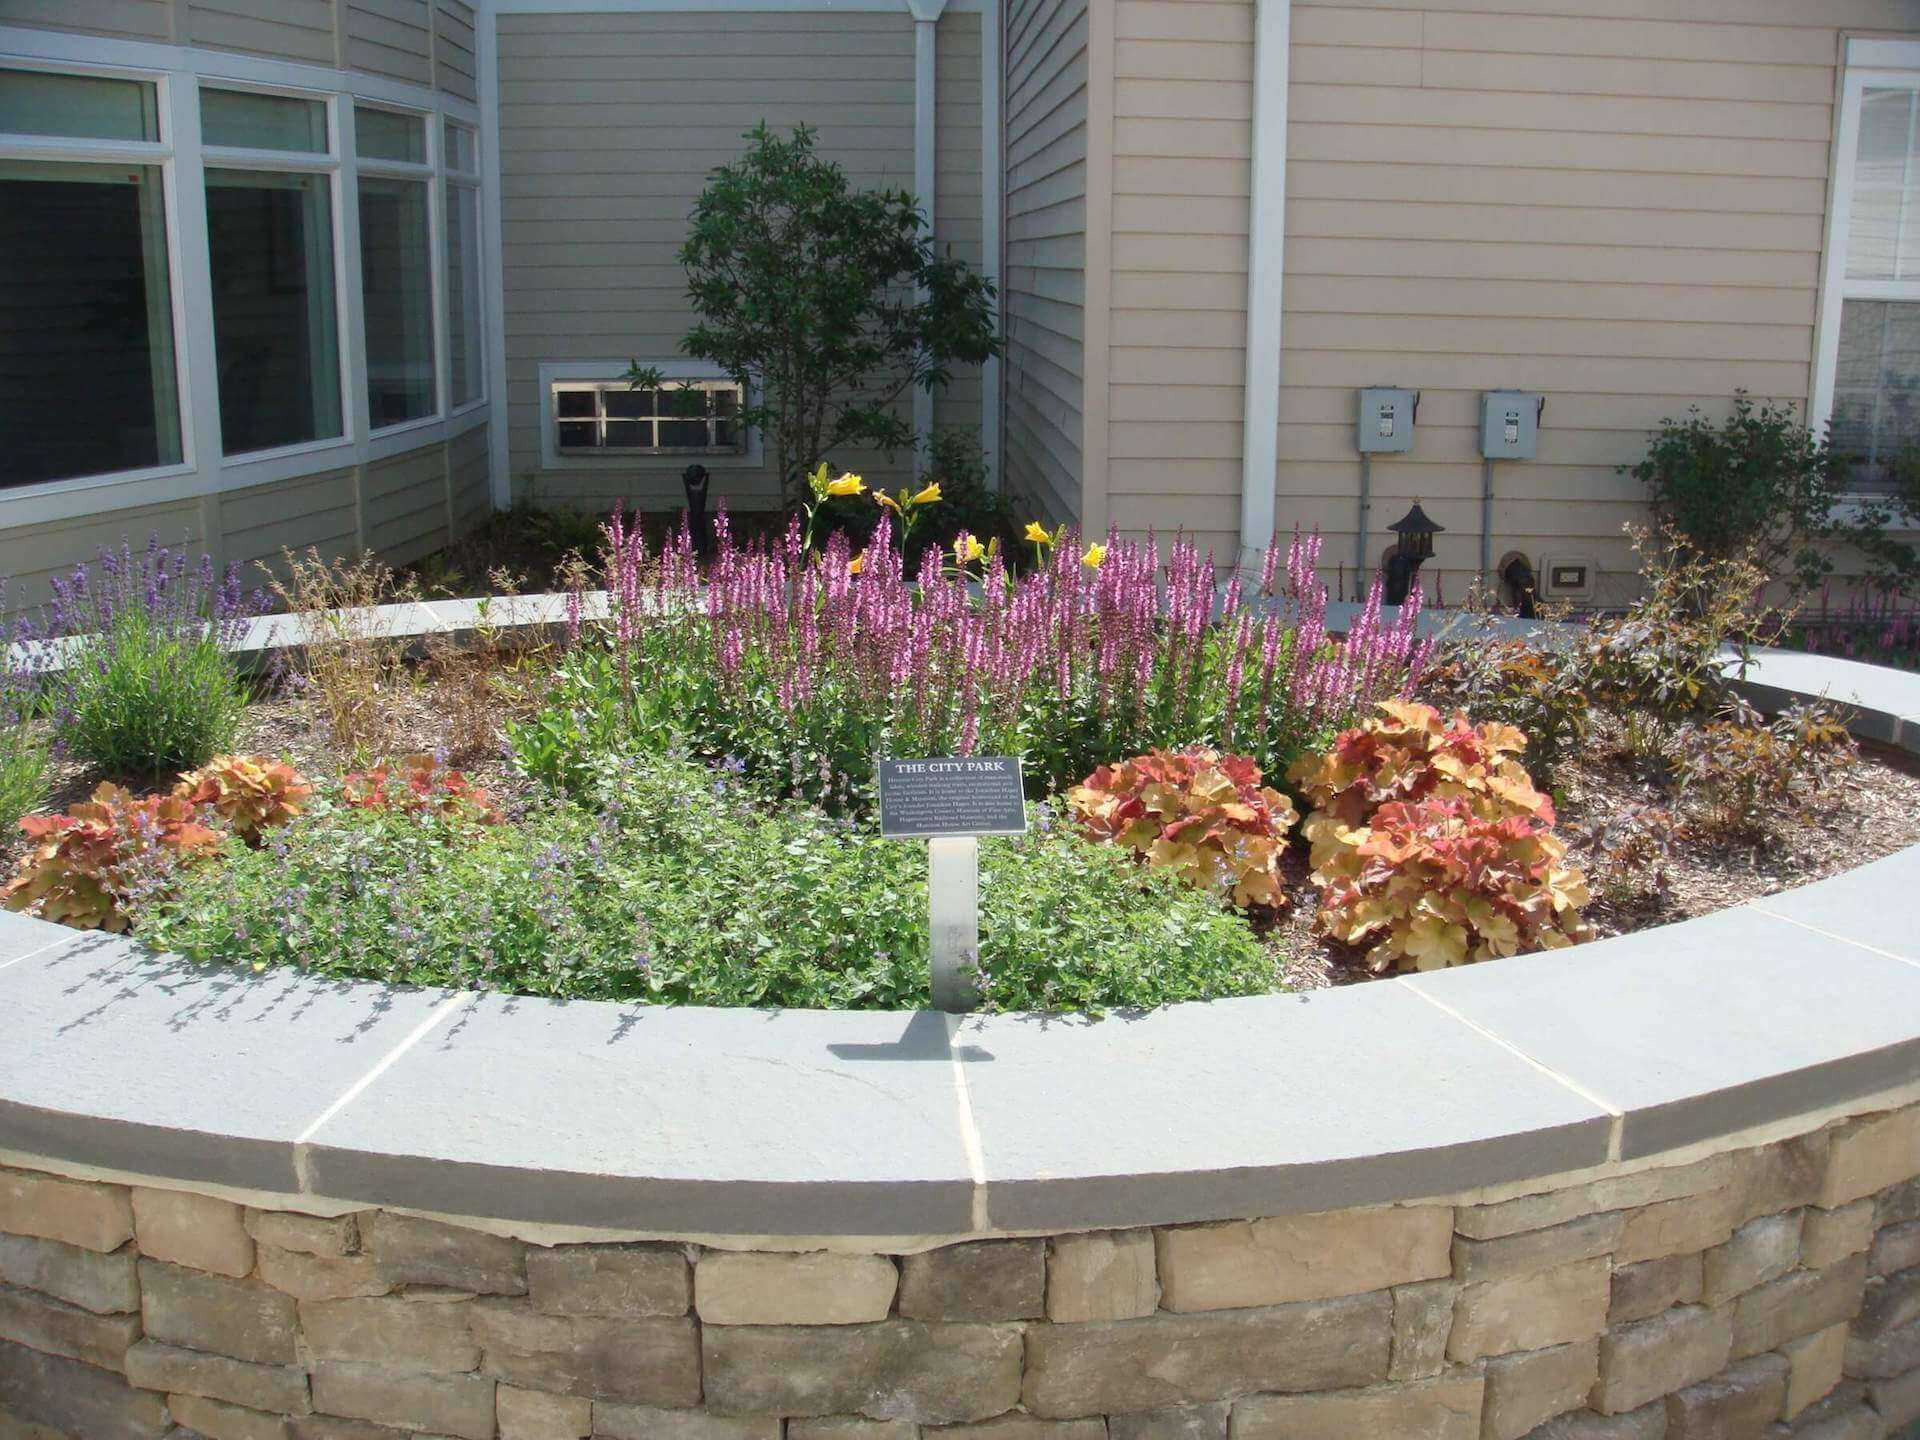 flower bed in the center of the landscaping area